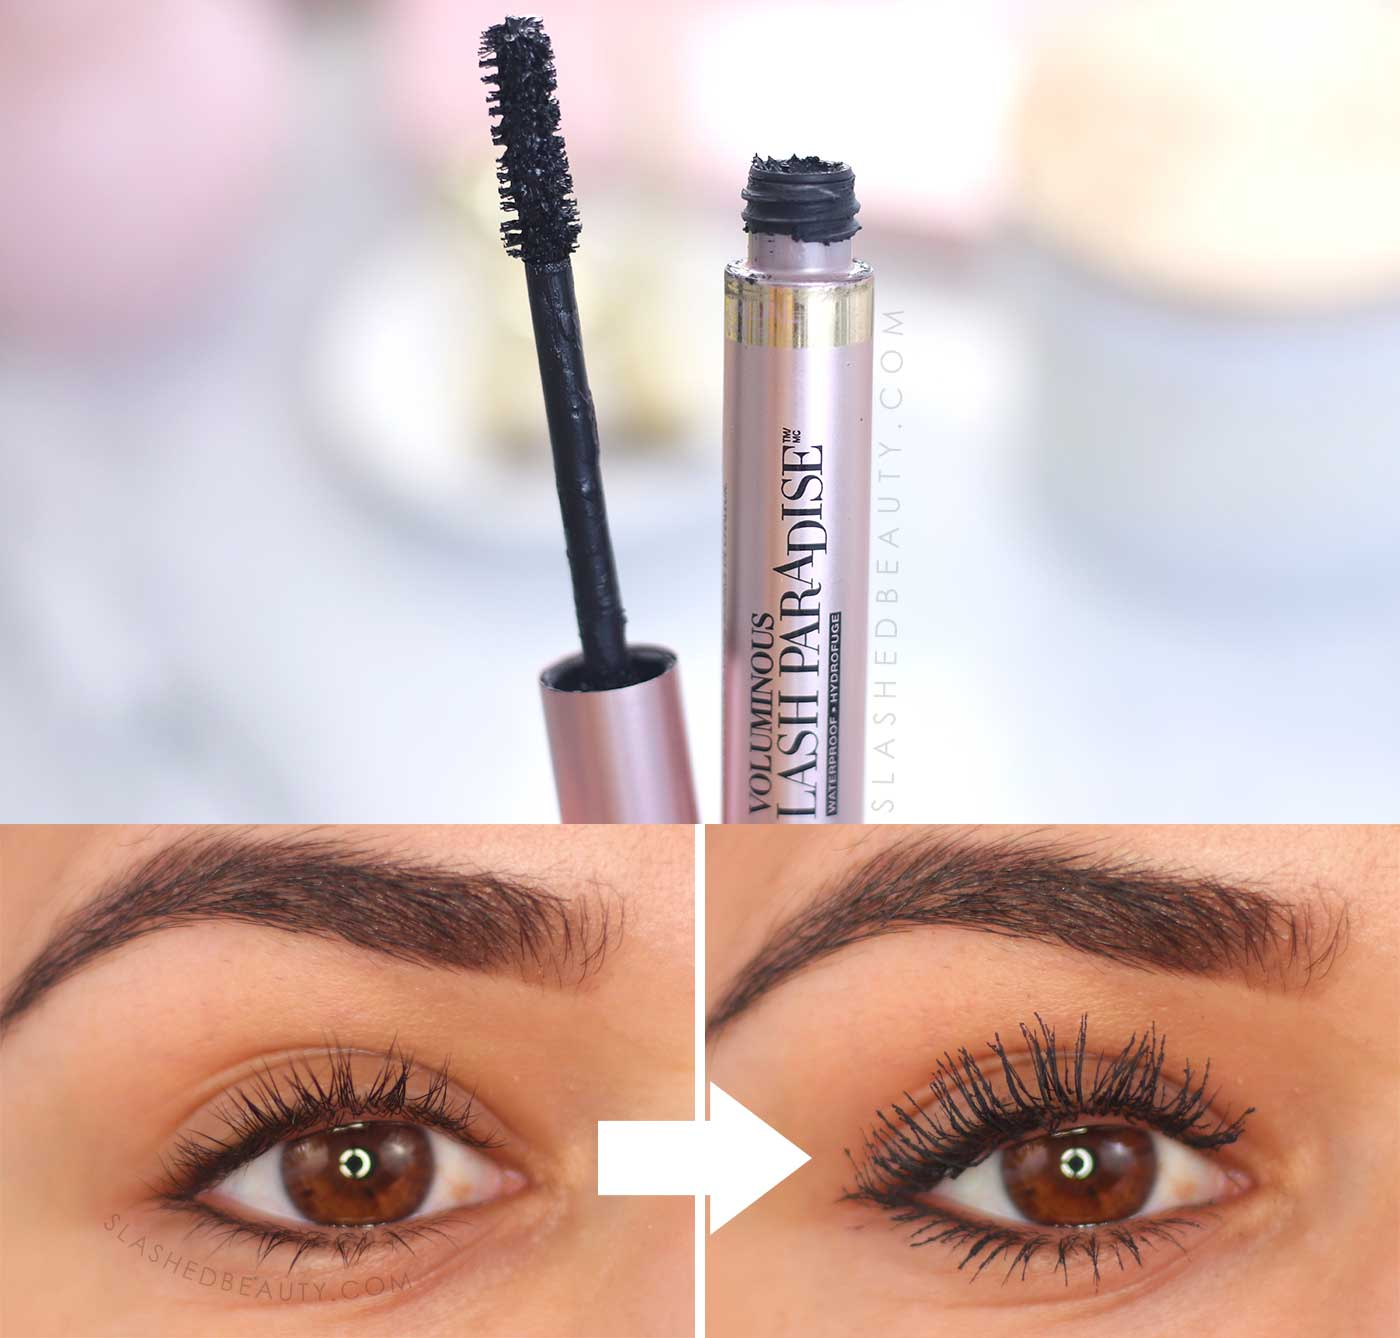 L'Oreal Lash Paradise Before & After Review | 5 Best Drugstore Mascaras in 2020 | Slashed Beauty